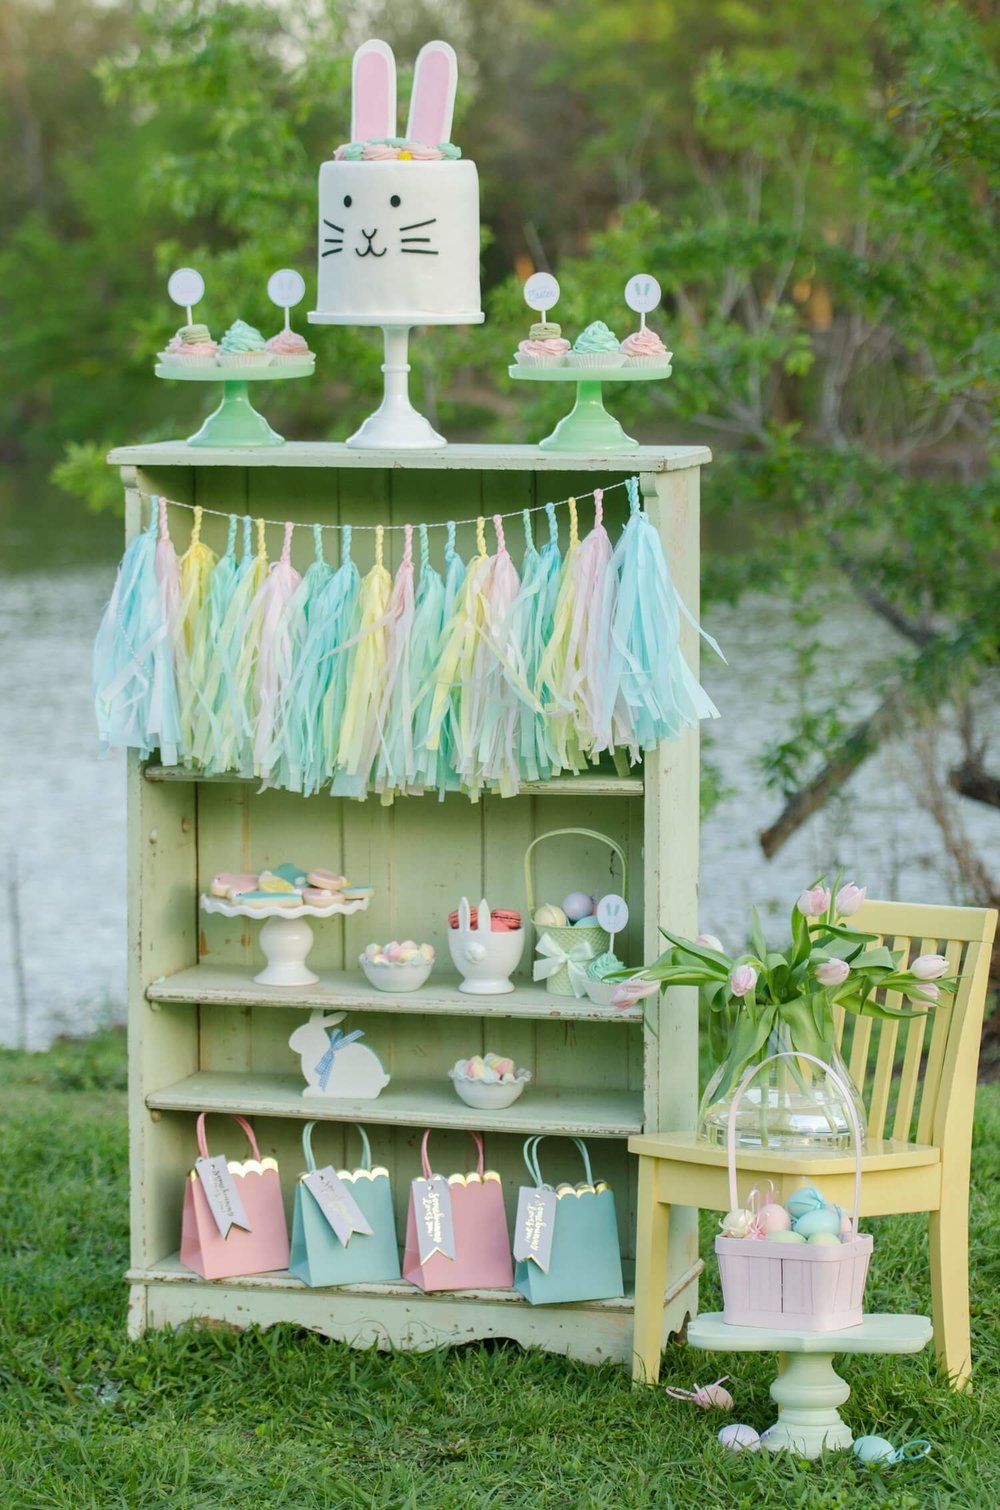 Be creative with your dessert table presentation. Here a mint colored shelf that matched the Easter party colors was used to display the party sweets, the cutest bunny cake and party favors. See more Easter Garden Party Ideas for Kids on Mint Event Design www.minteventdesign.com #easterparty #gardenparty #partysupplies #desserttable #eastertable